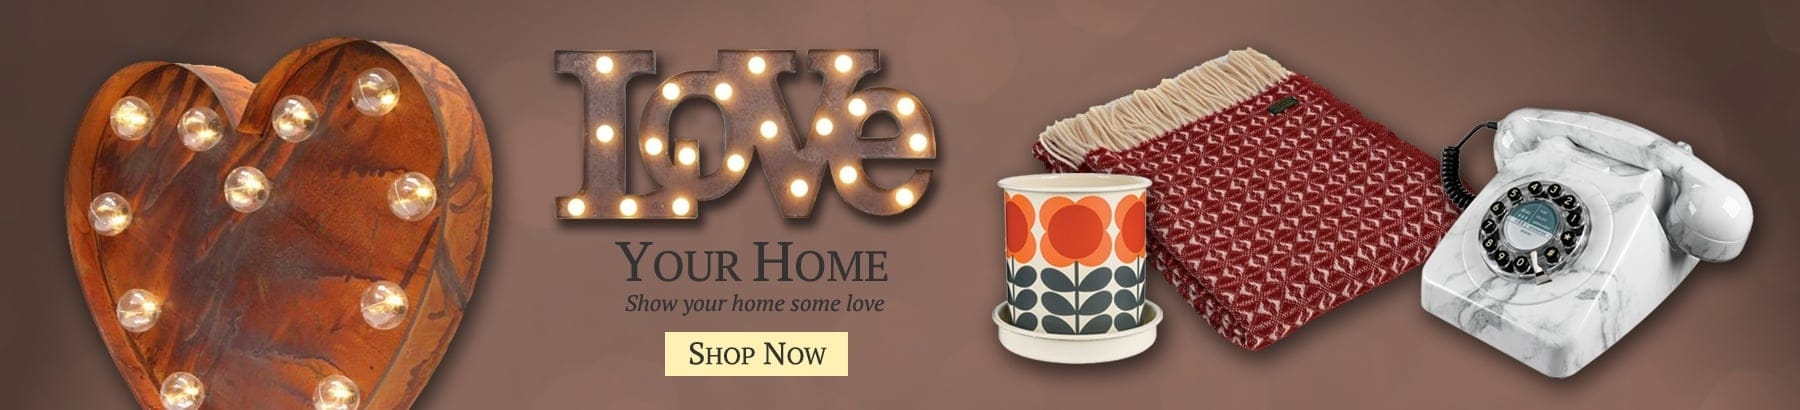 Love YOur Home